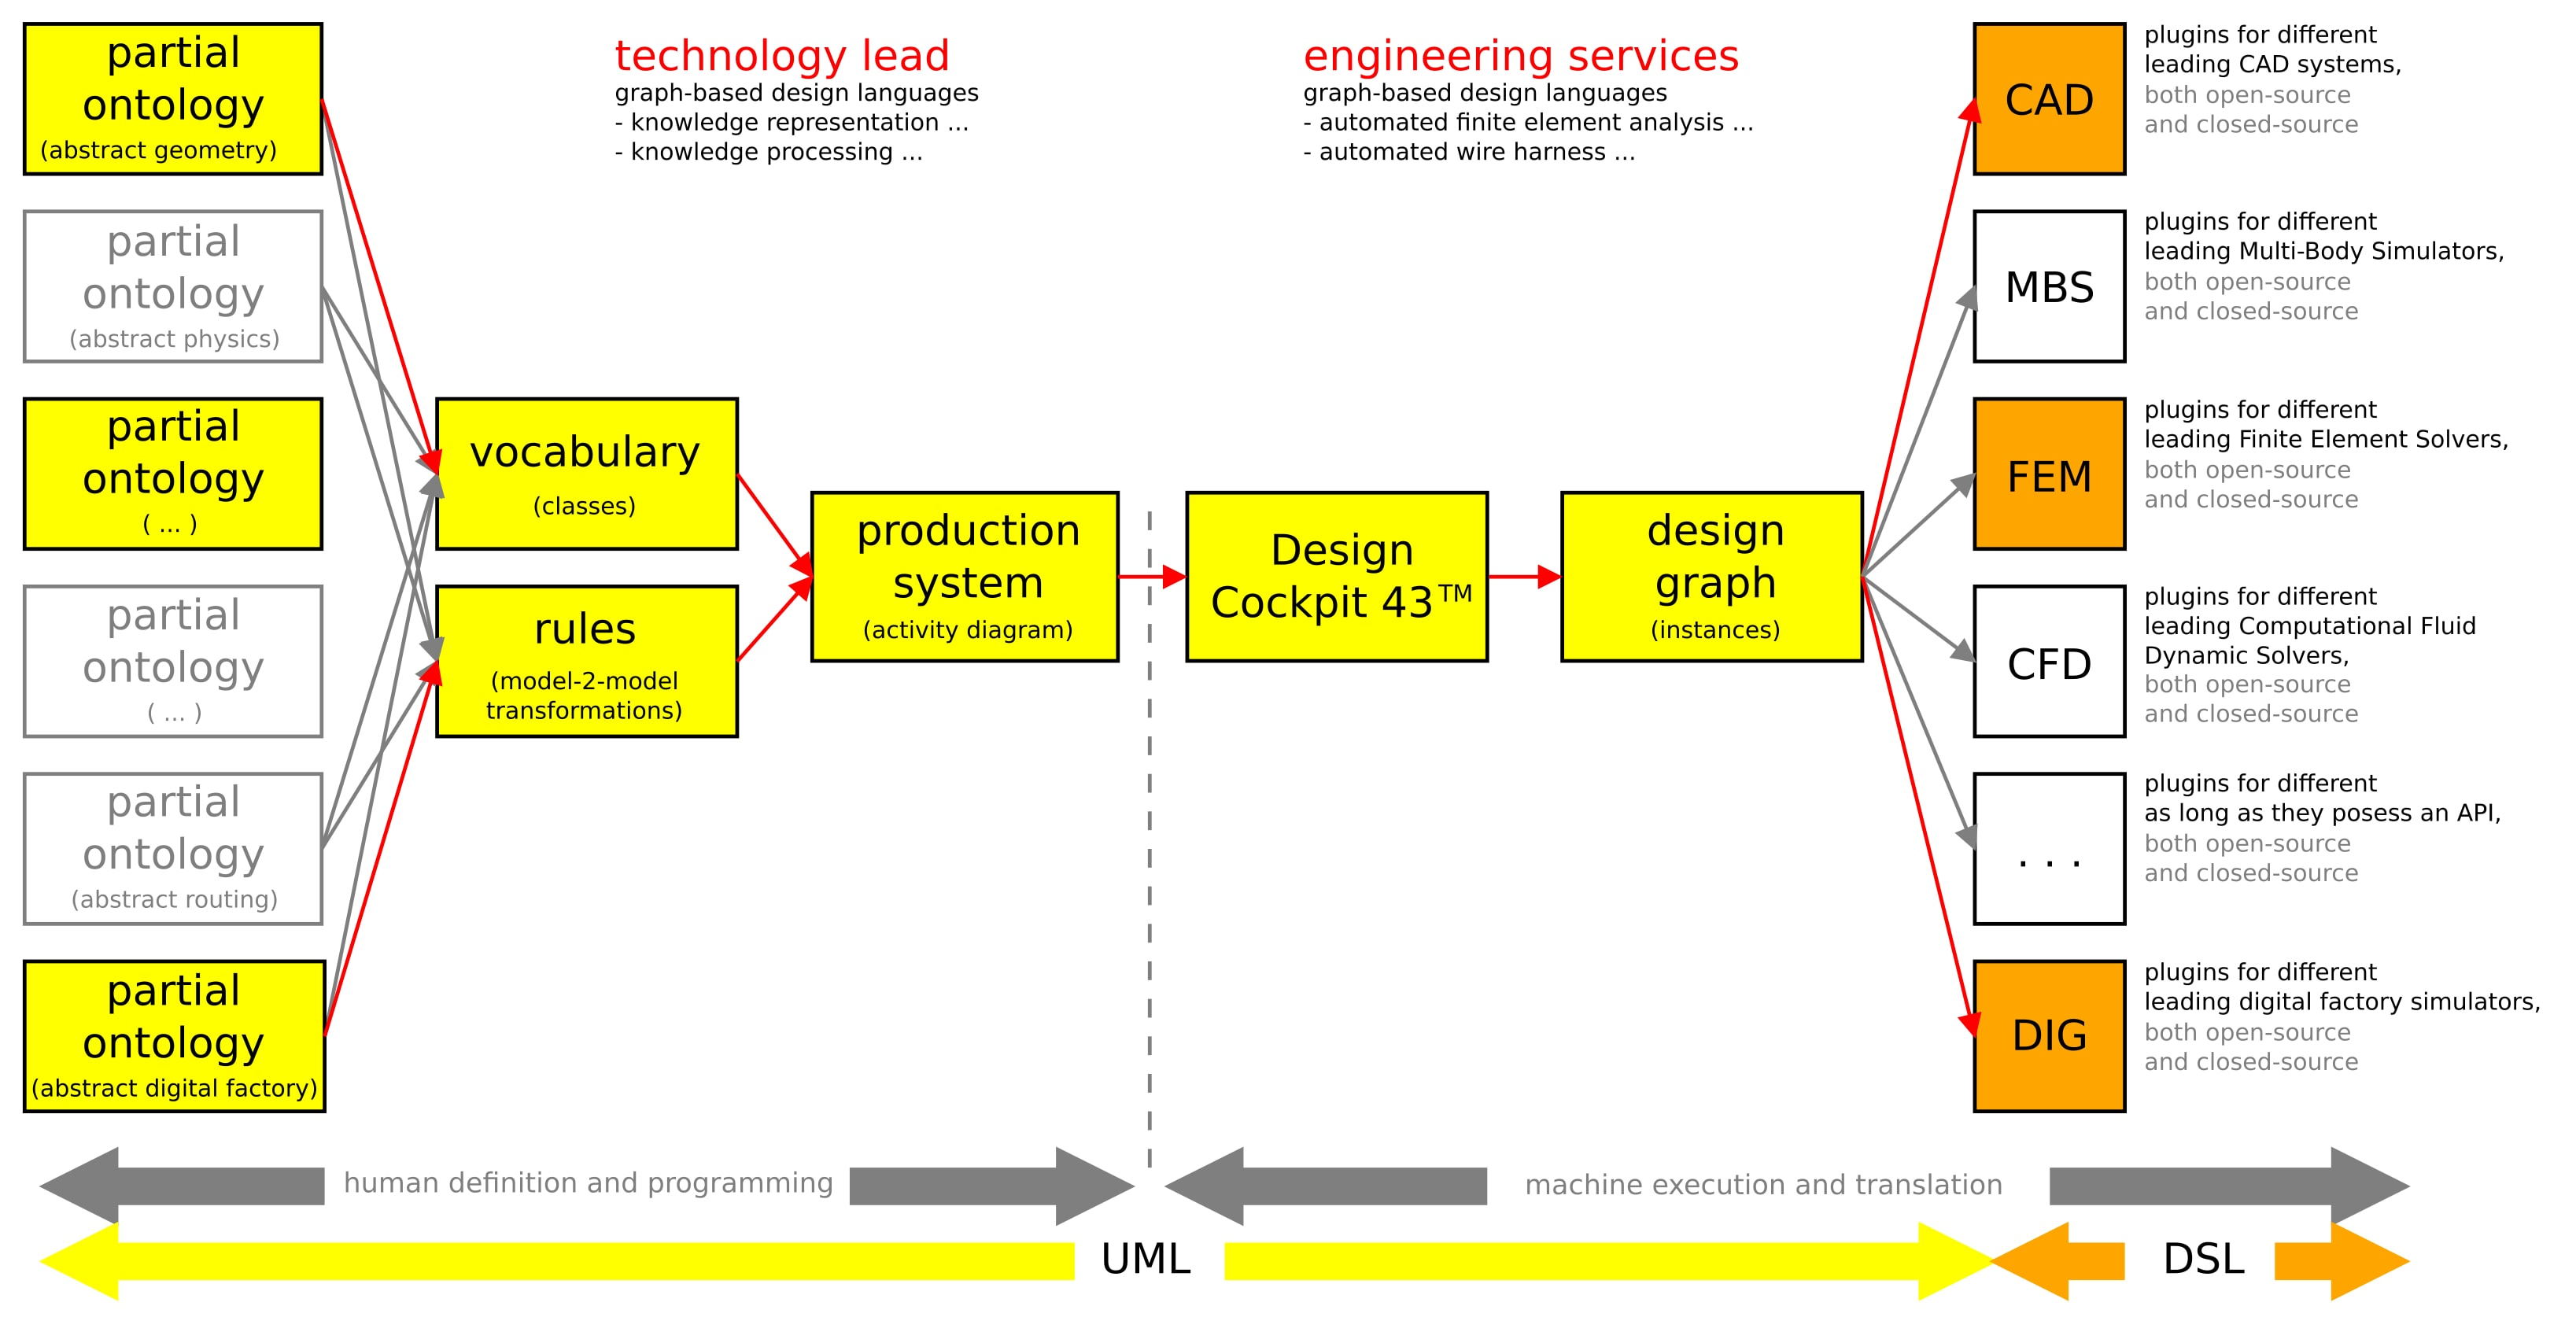 Information Architecture of Design Cockpit 43